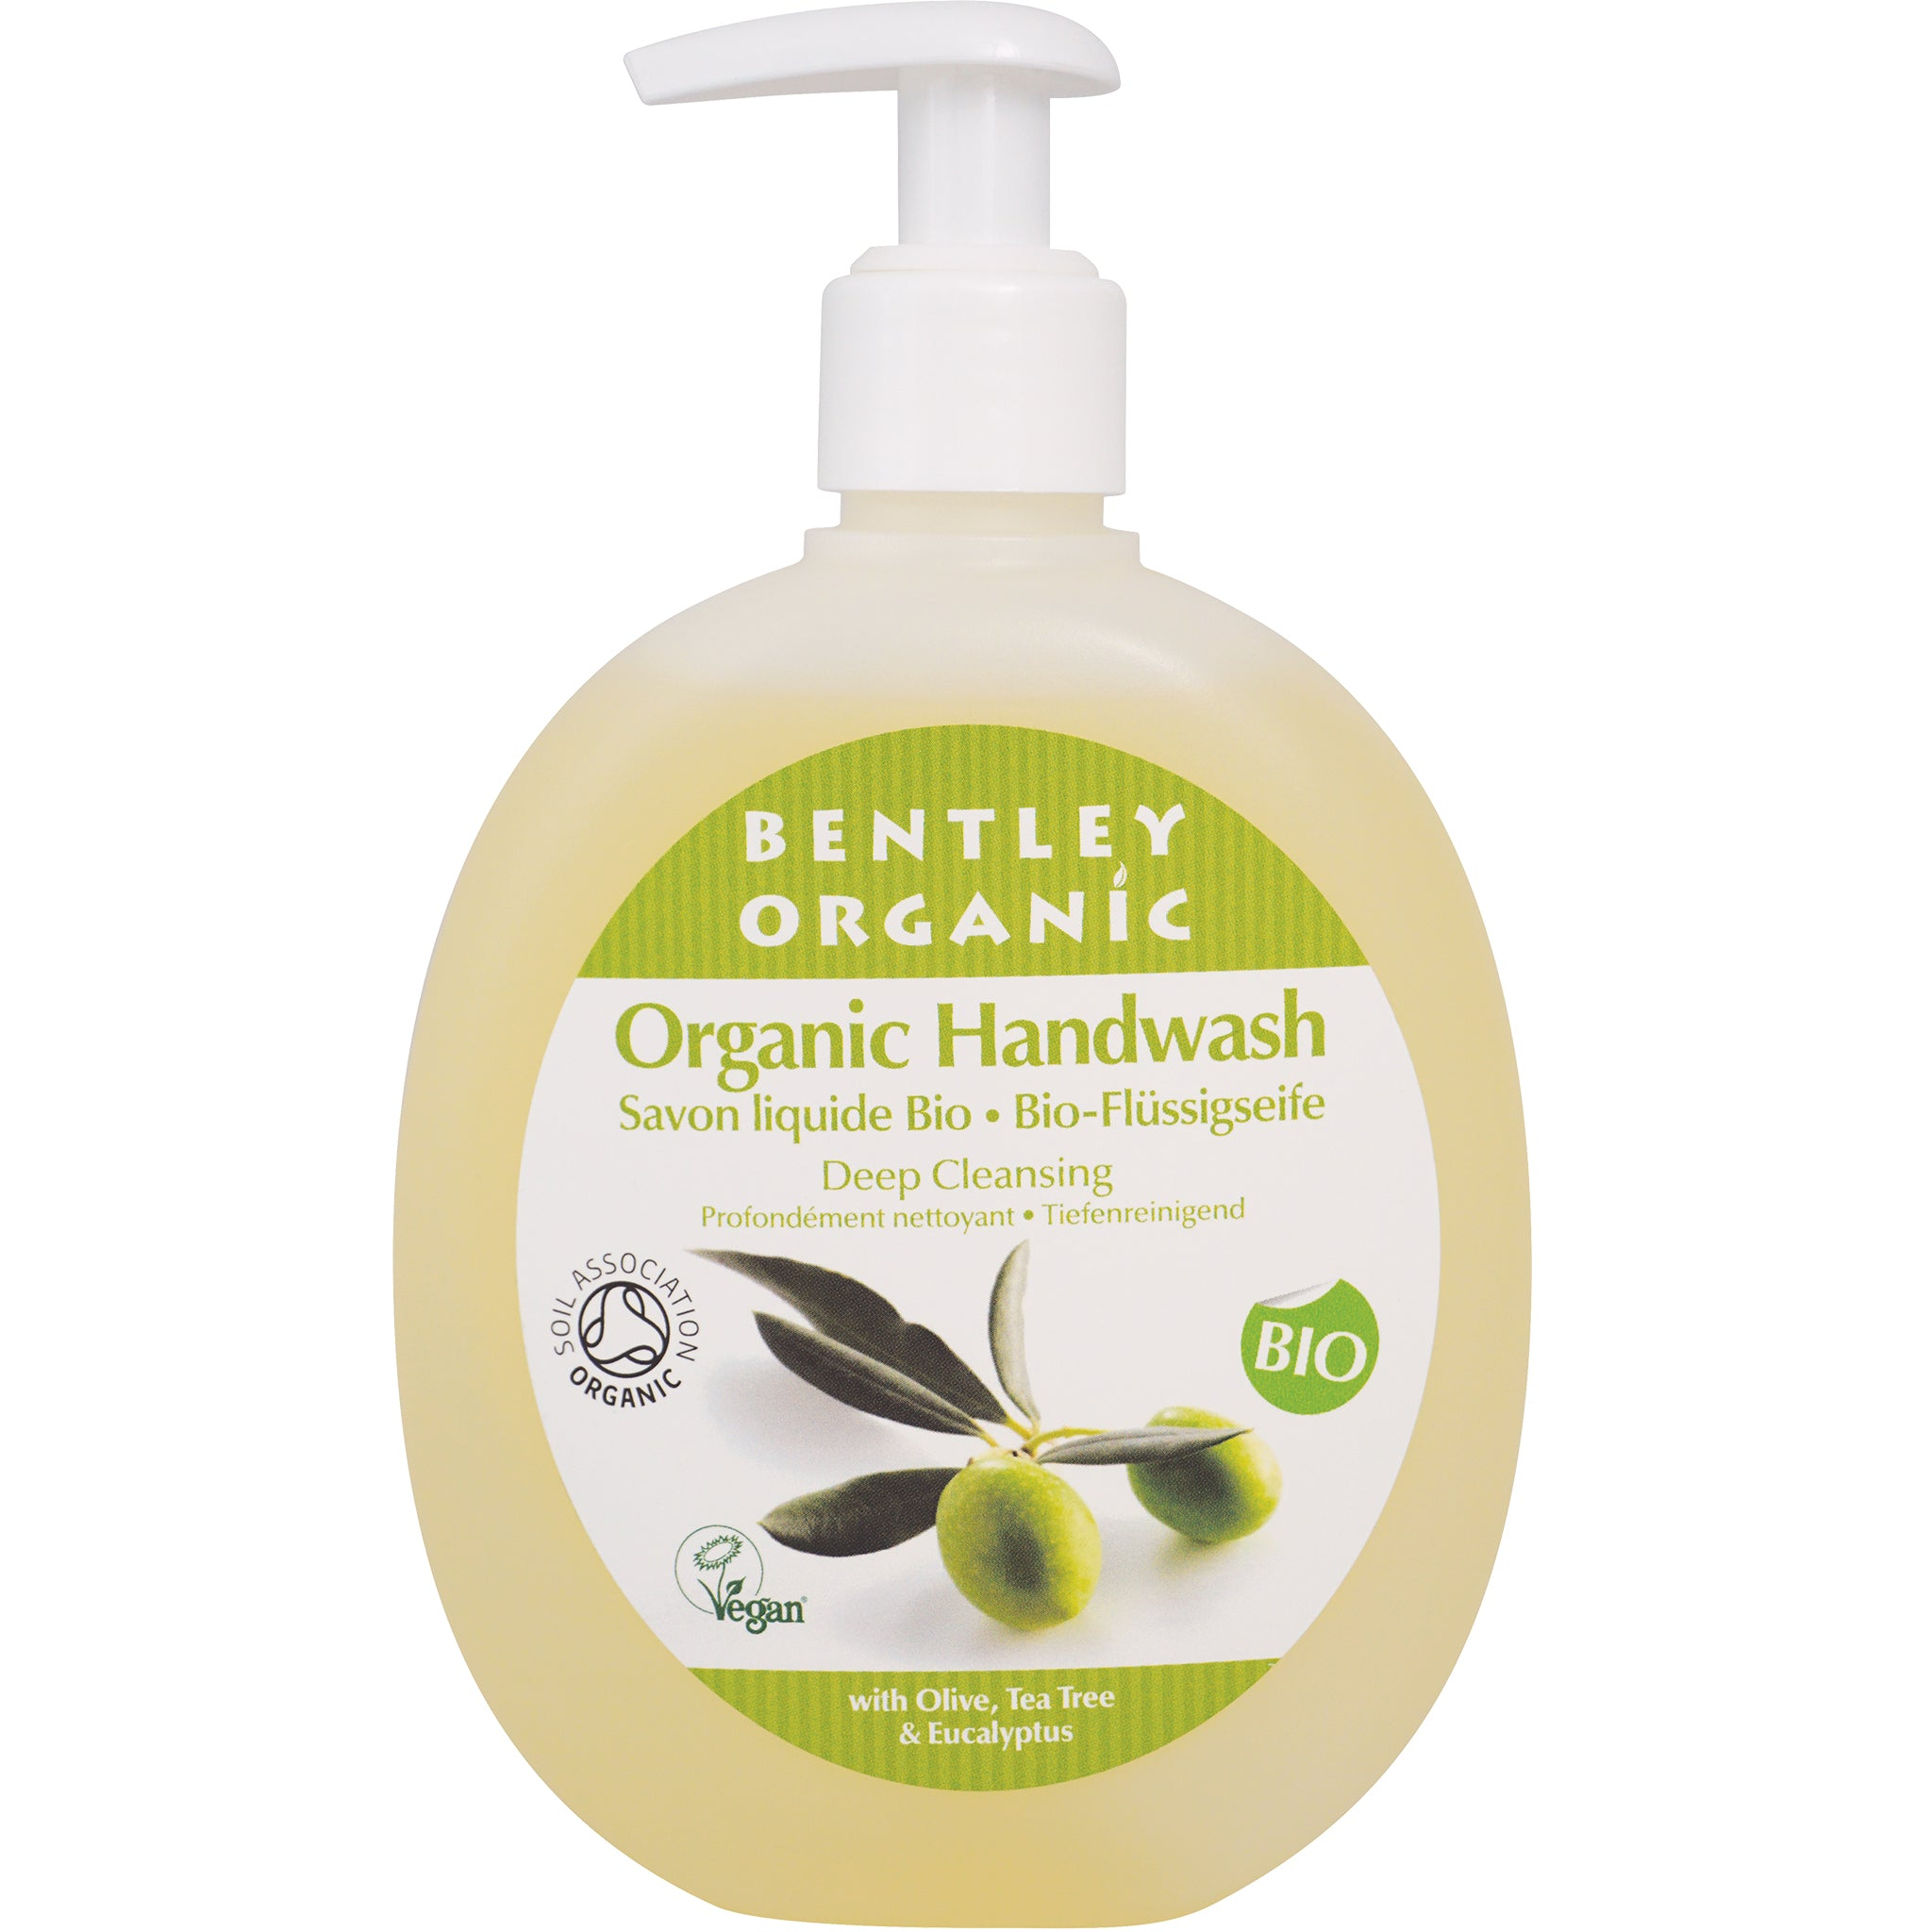 Deep Cleansing Handwash with Olive, Tea Tree and Eucalyptus